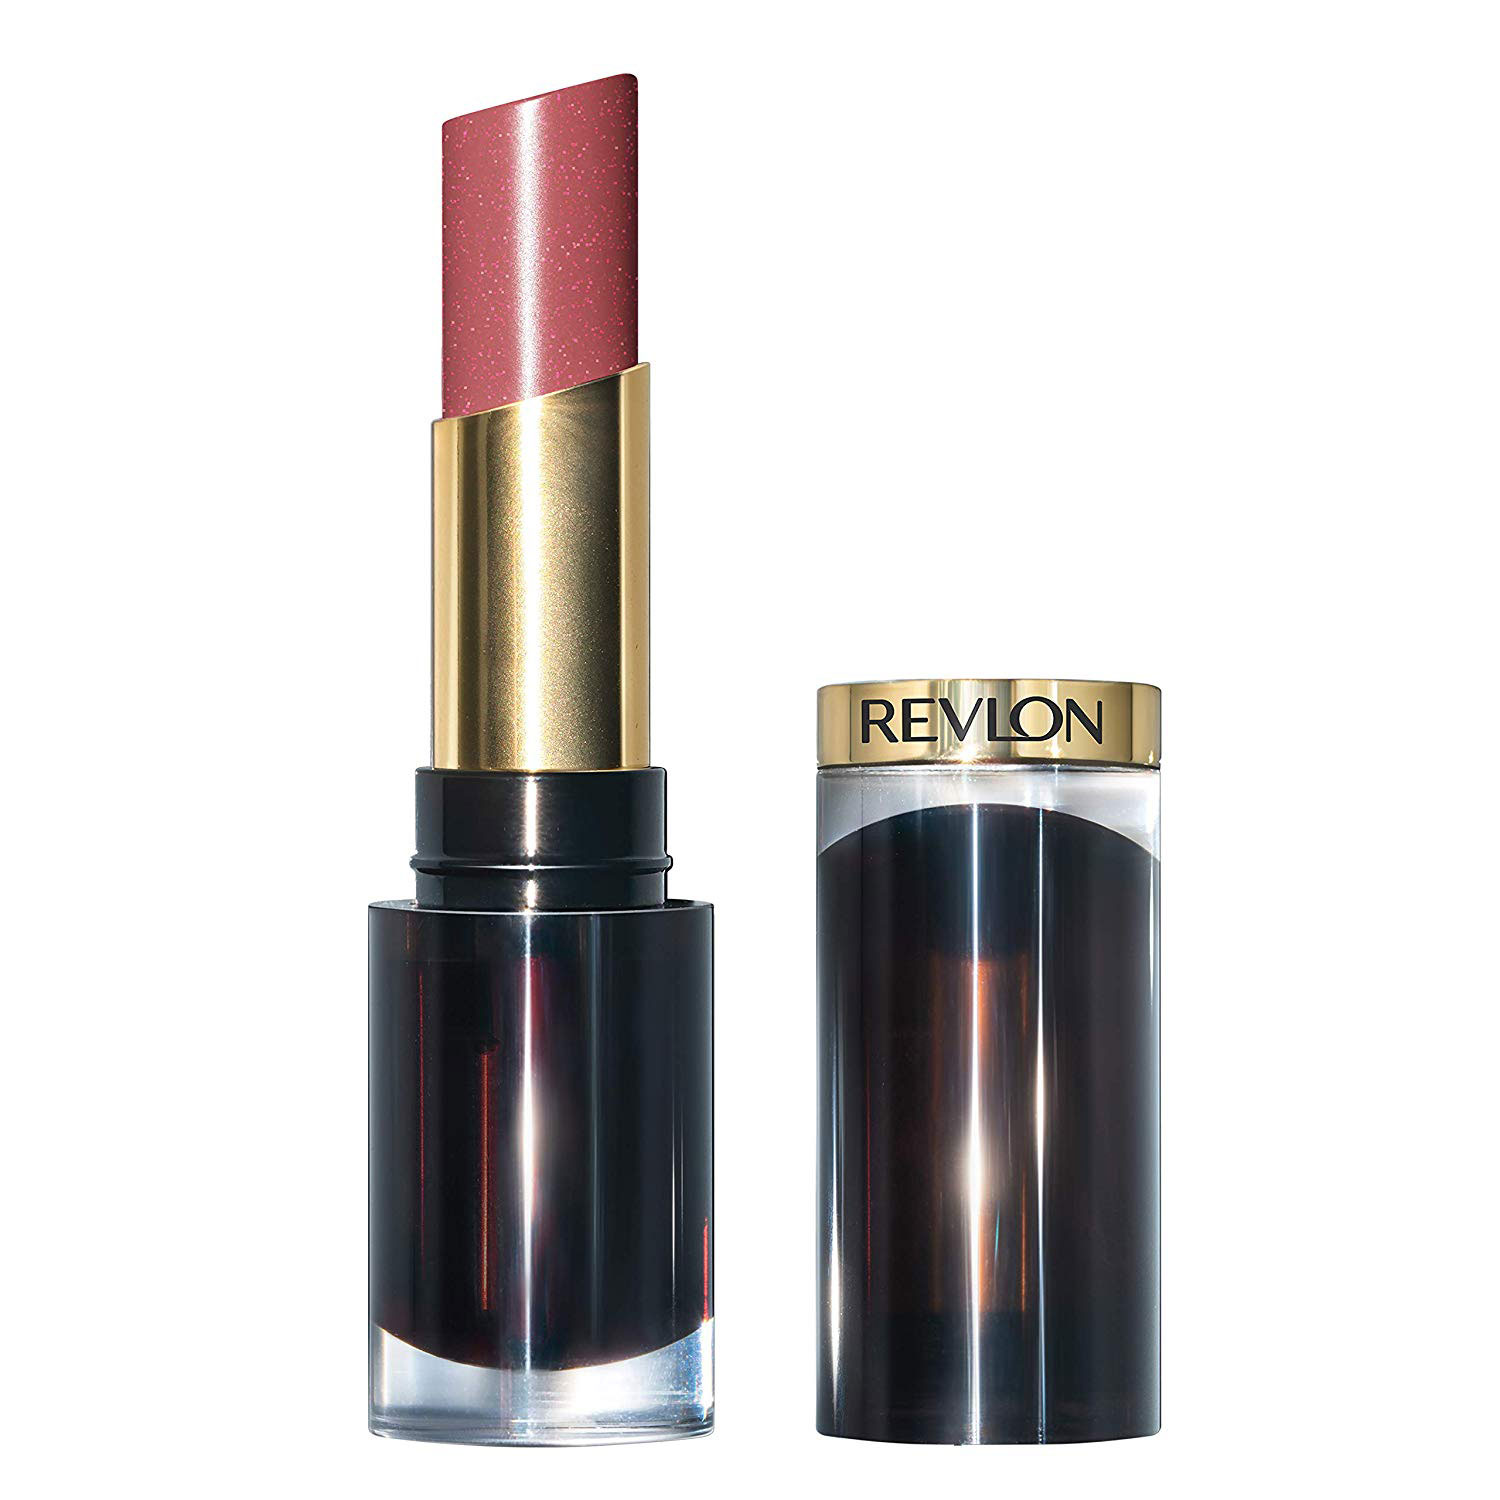 Revlon Super Lustrous Glass Shine Lipstick